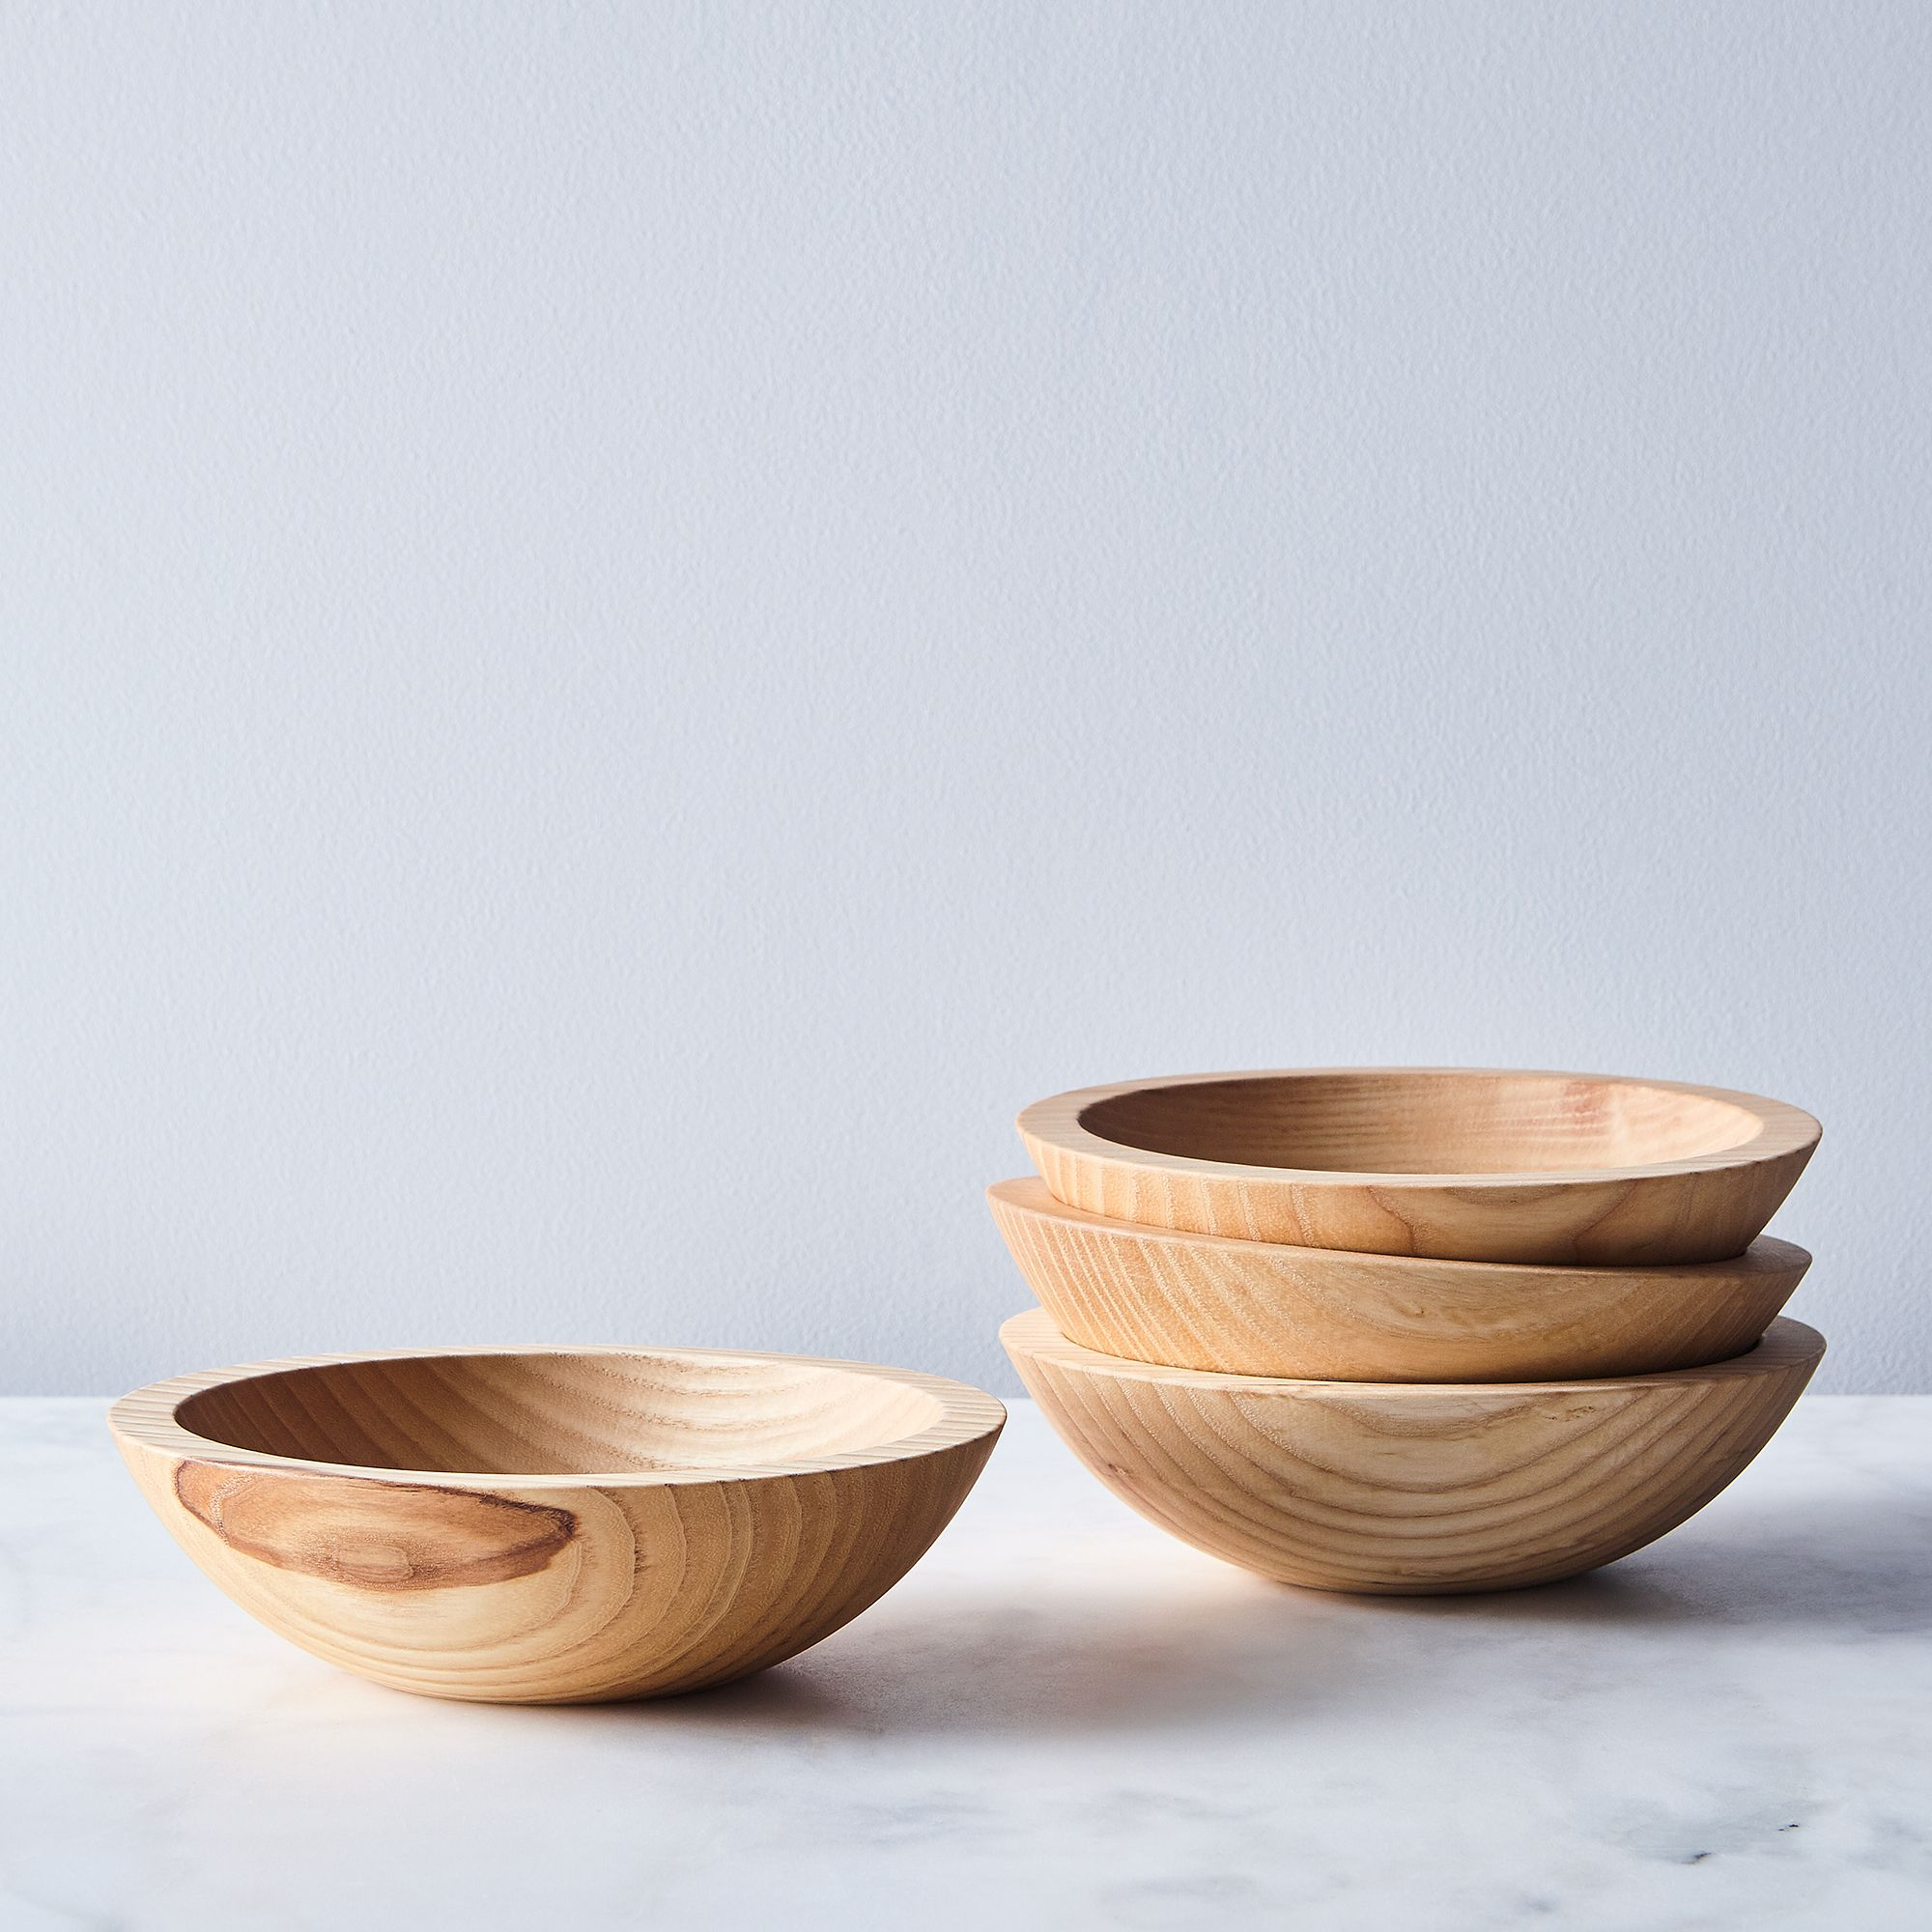 693700b5 a27c 453a 8945 3334385c4ca1  2017 0926 farmhouse pottery x food52 handcrafted wood salad bowls set of 4 silo rocky luten 002